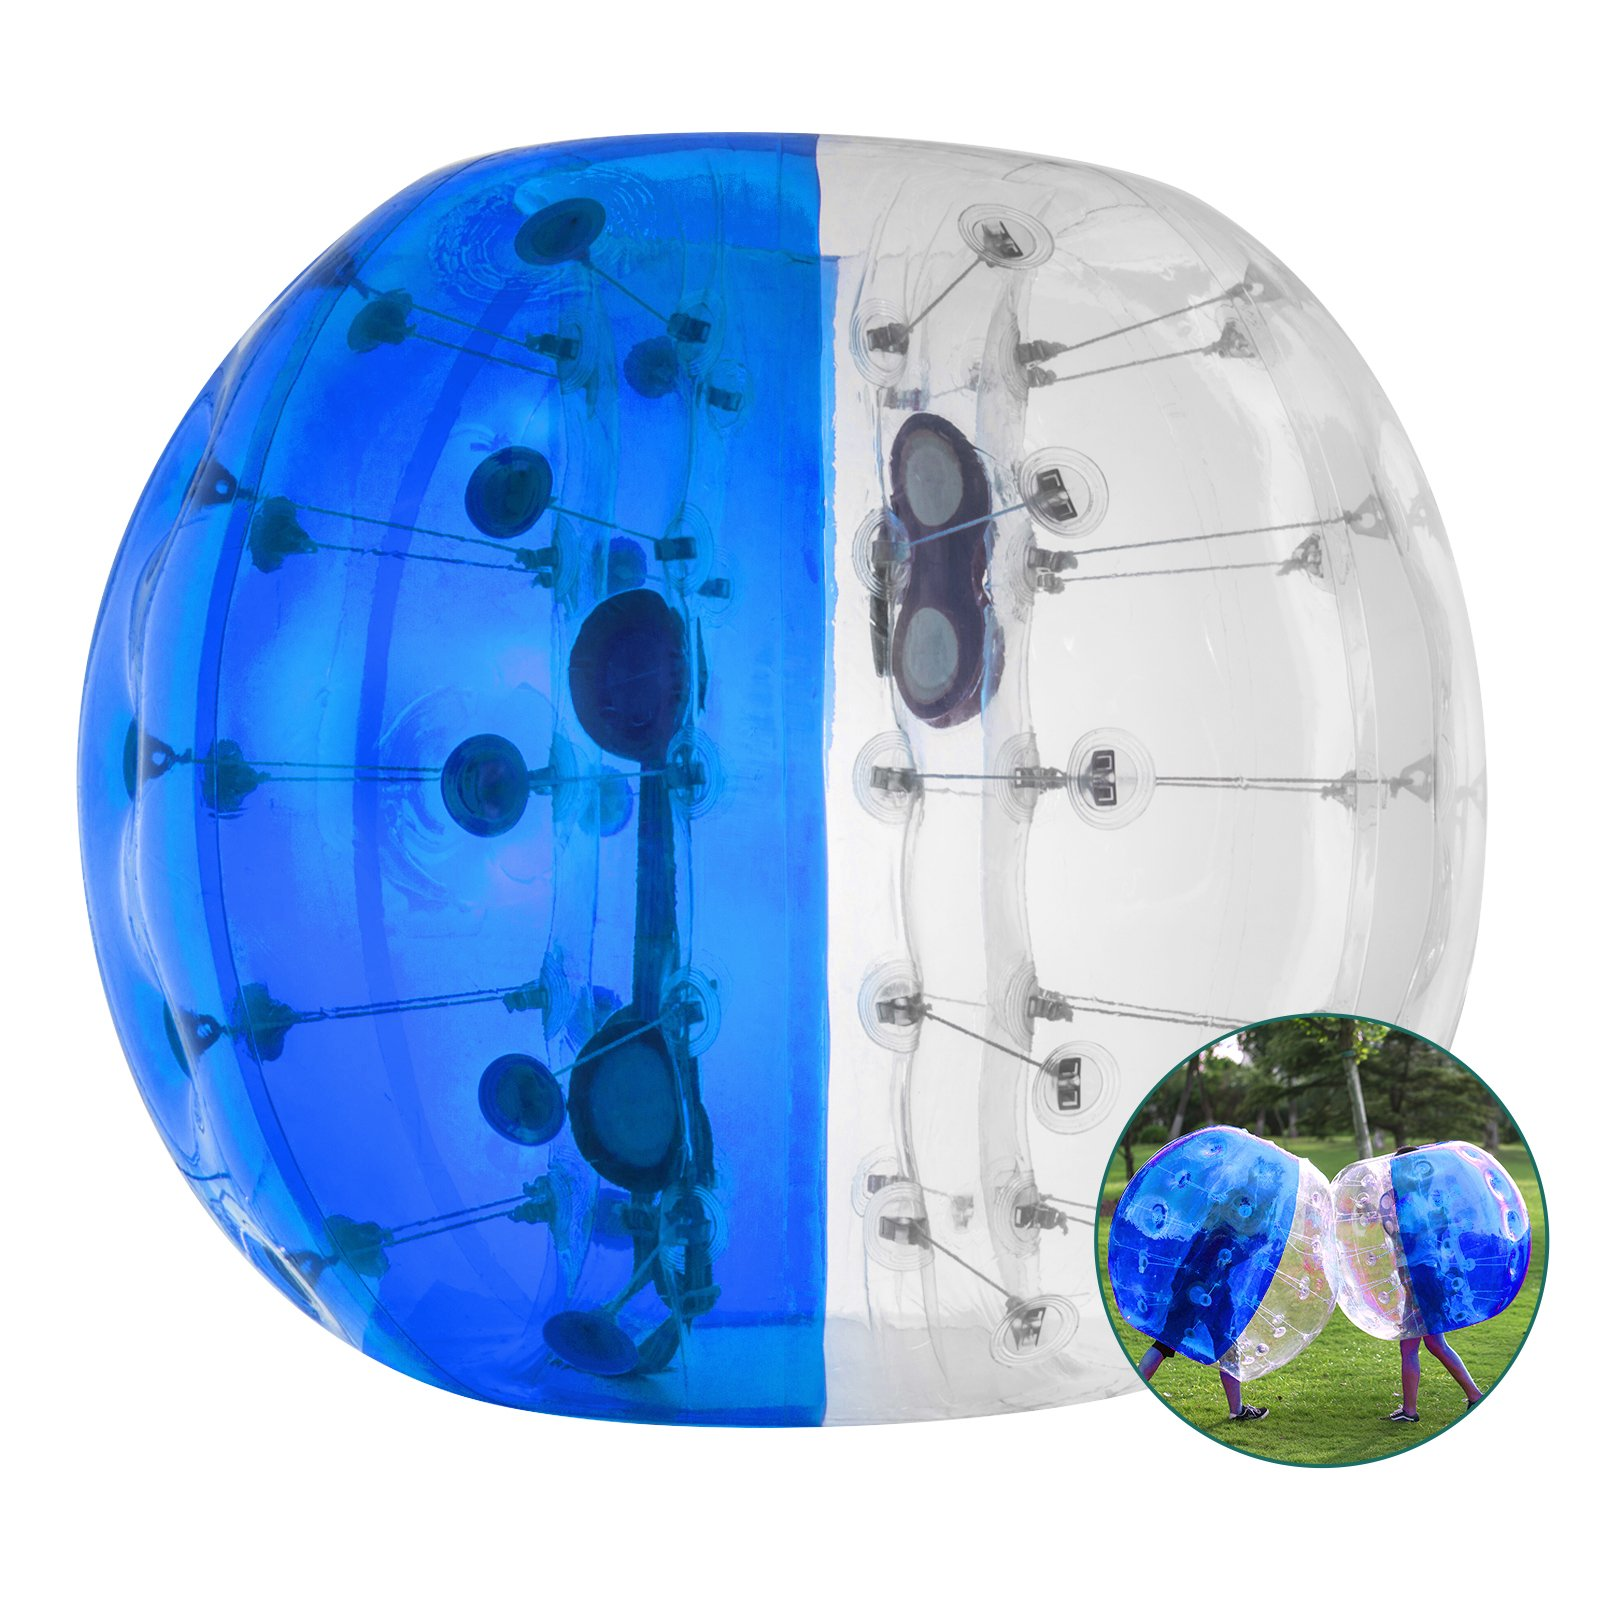 Happybuy Inflatable Bumper Ball 1.2M/4ft 1.5M/5ft Diameter Bubble Soccer Ball Blow Up Toy in 5 Min Inflatable Bumper Bubble Balls for Adults or Child (Half Blue, 5ft)